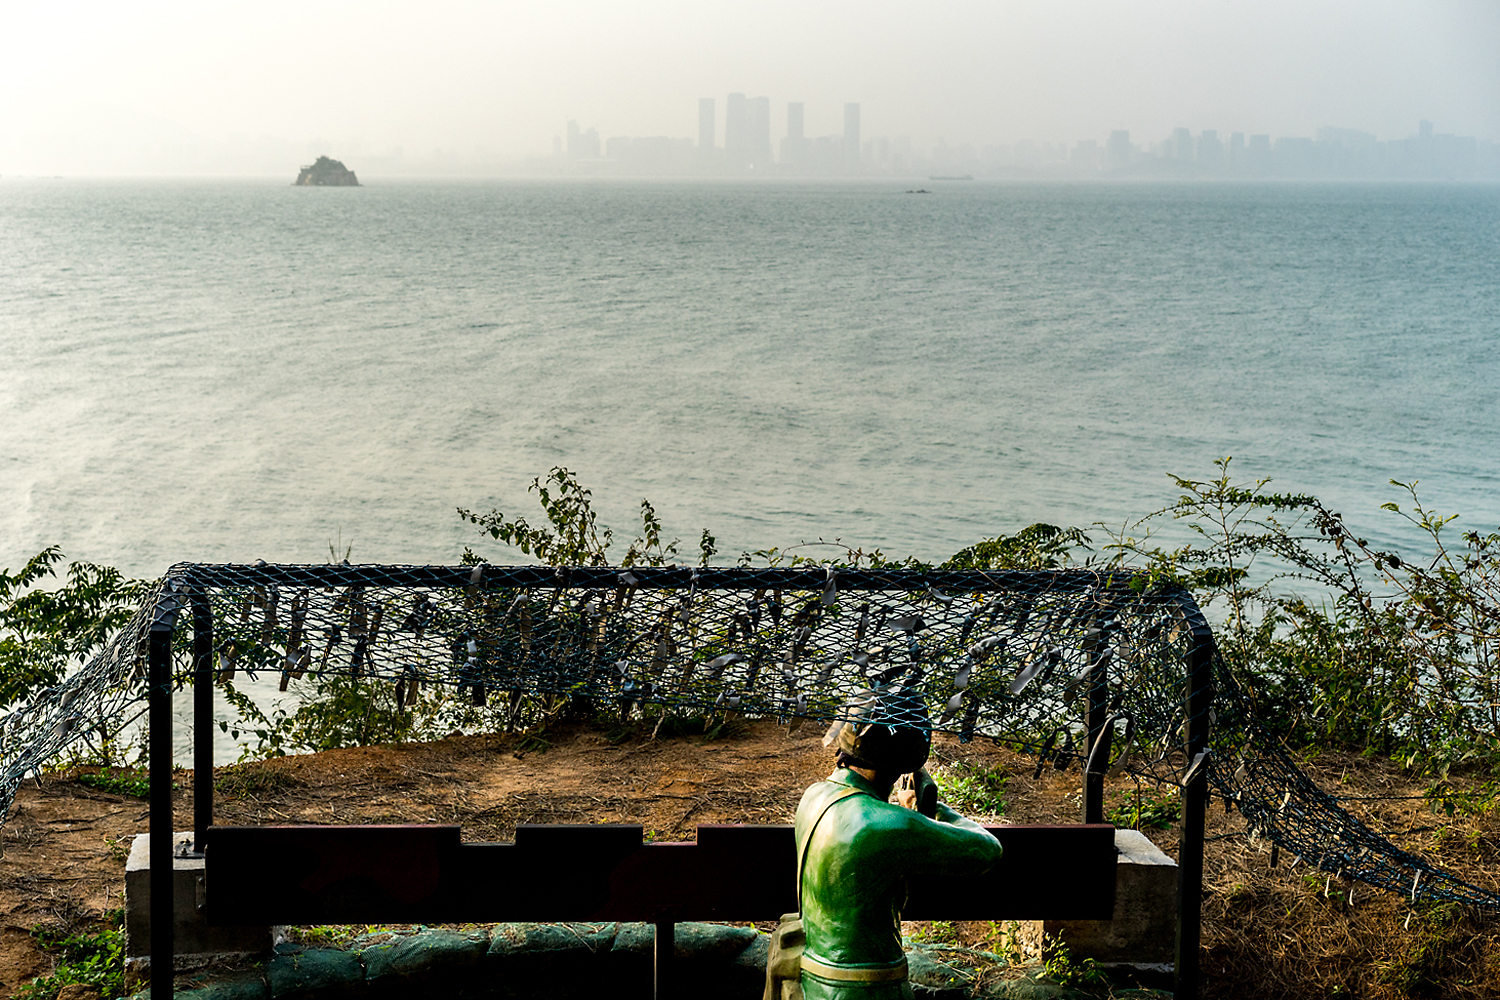 A statue of a soldier faces the waters beyond Lieyu Island, also known as Little Kinmen, a short ferry ride from Kinmen proper. This island is a tourist stop for visitors interested in the military history of the region, where young Taiwanese soldiers used to deploy along Kinmen's coast to watch for enemy 'frogmen' from China.